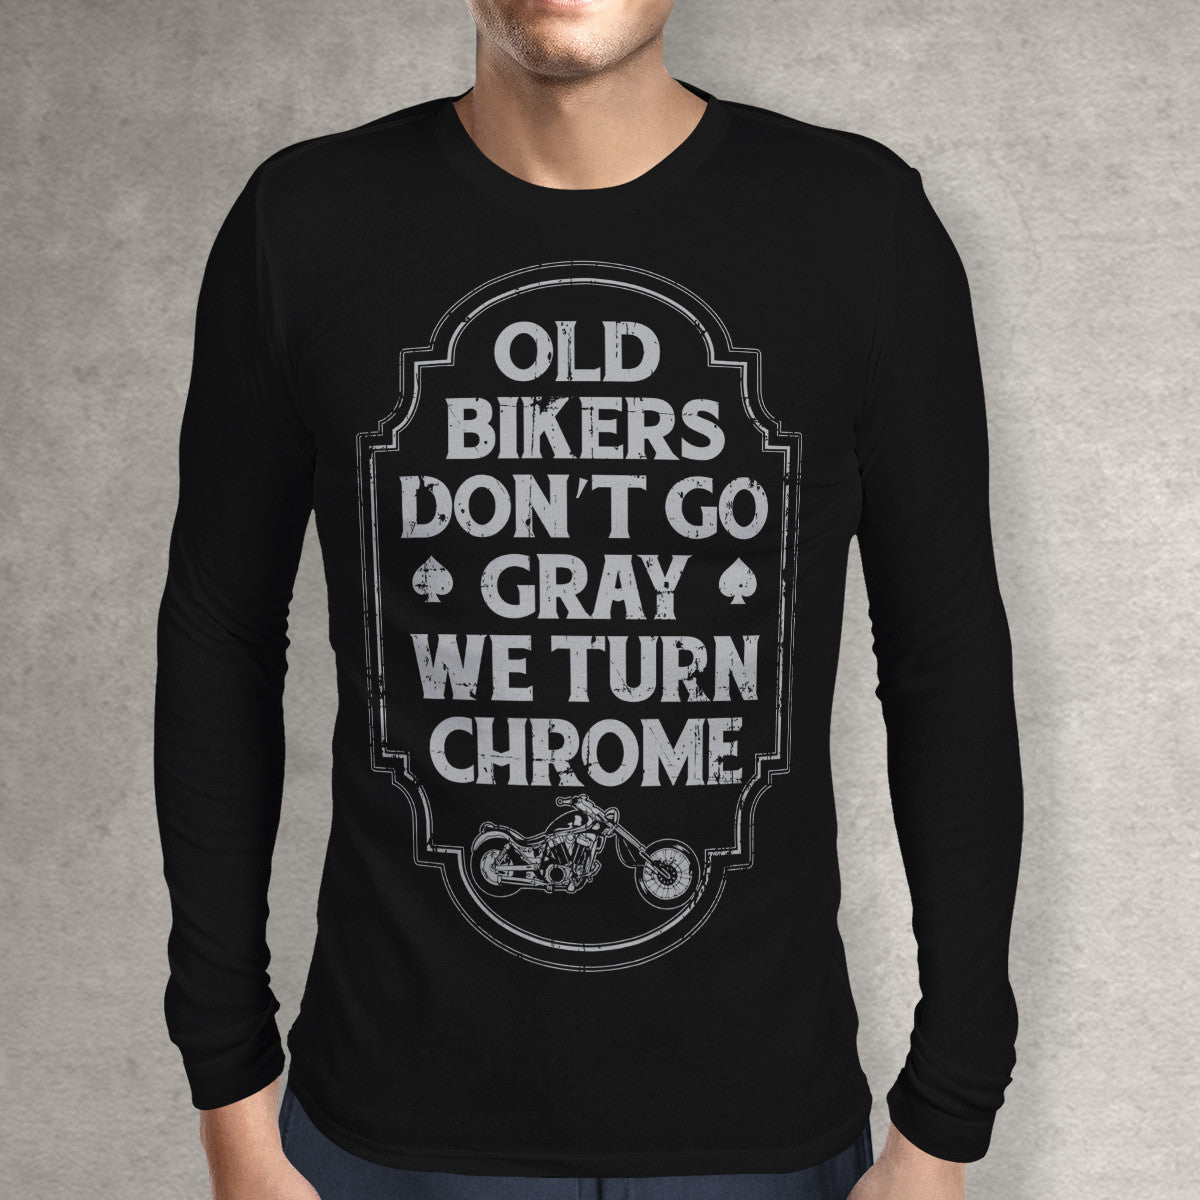 old bikers ... T-Shirts - Old Bikers Don't Go Gray We Turn Chrome